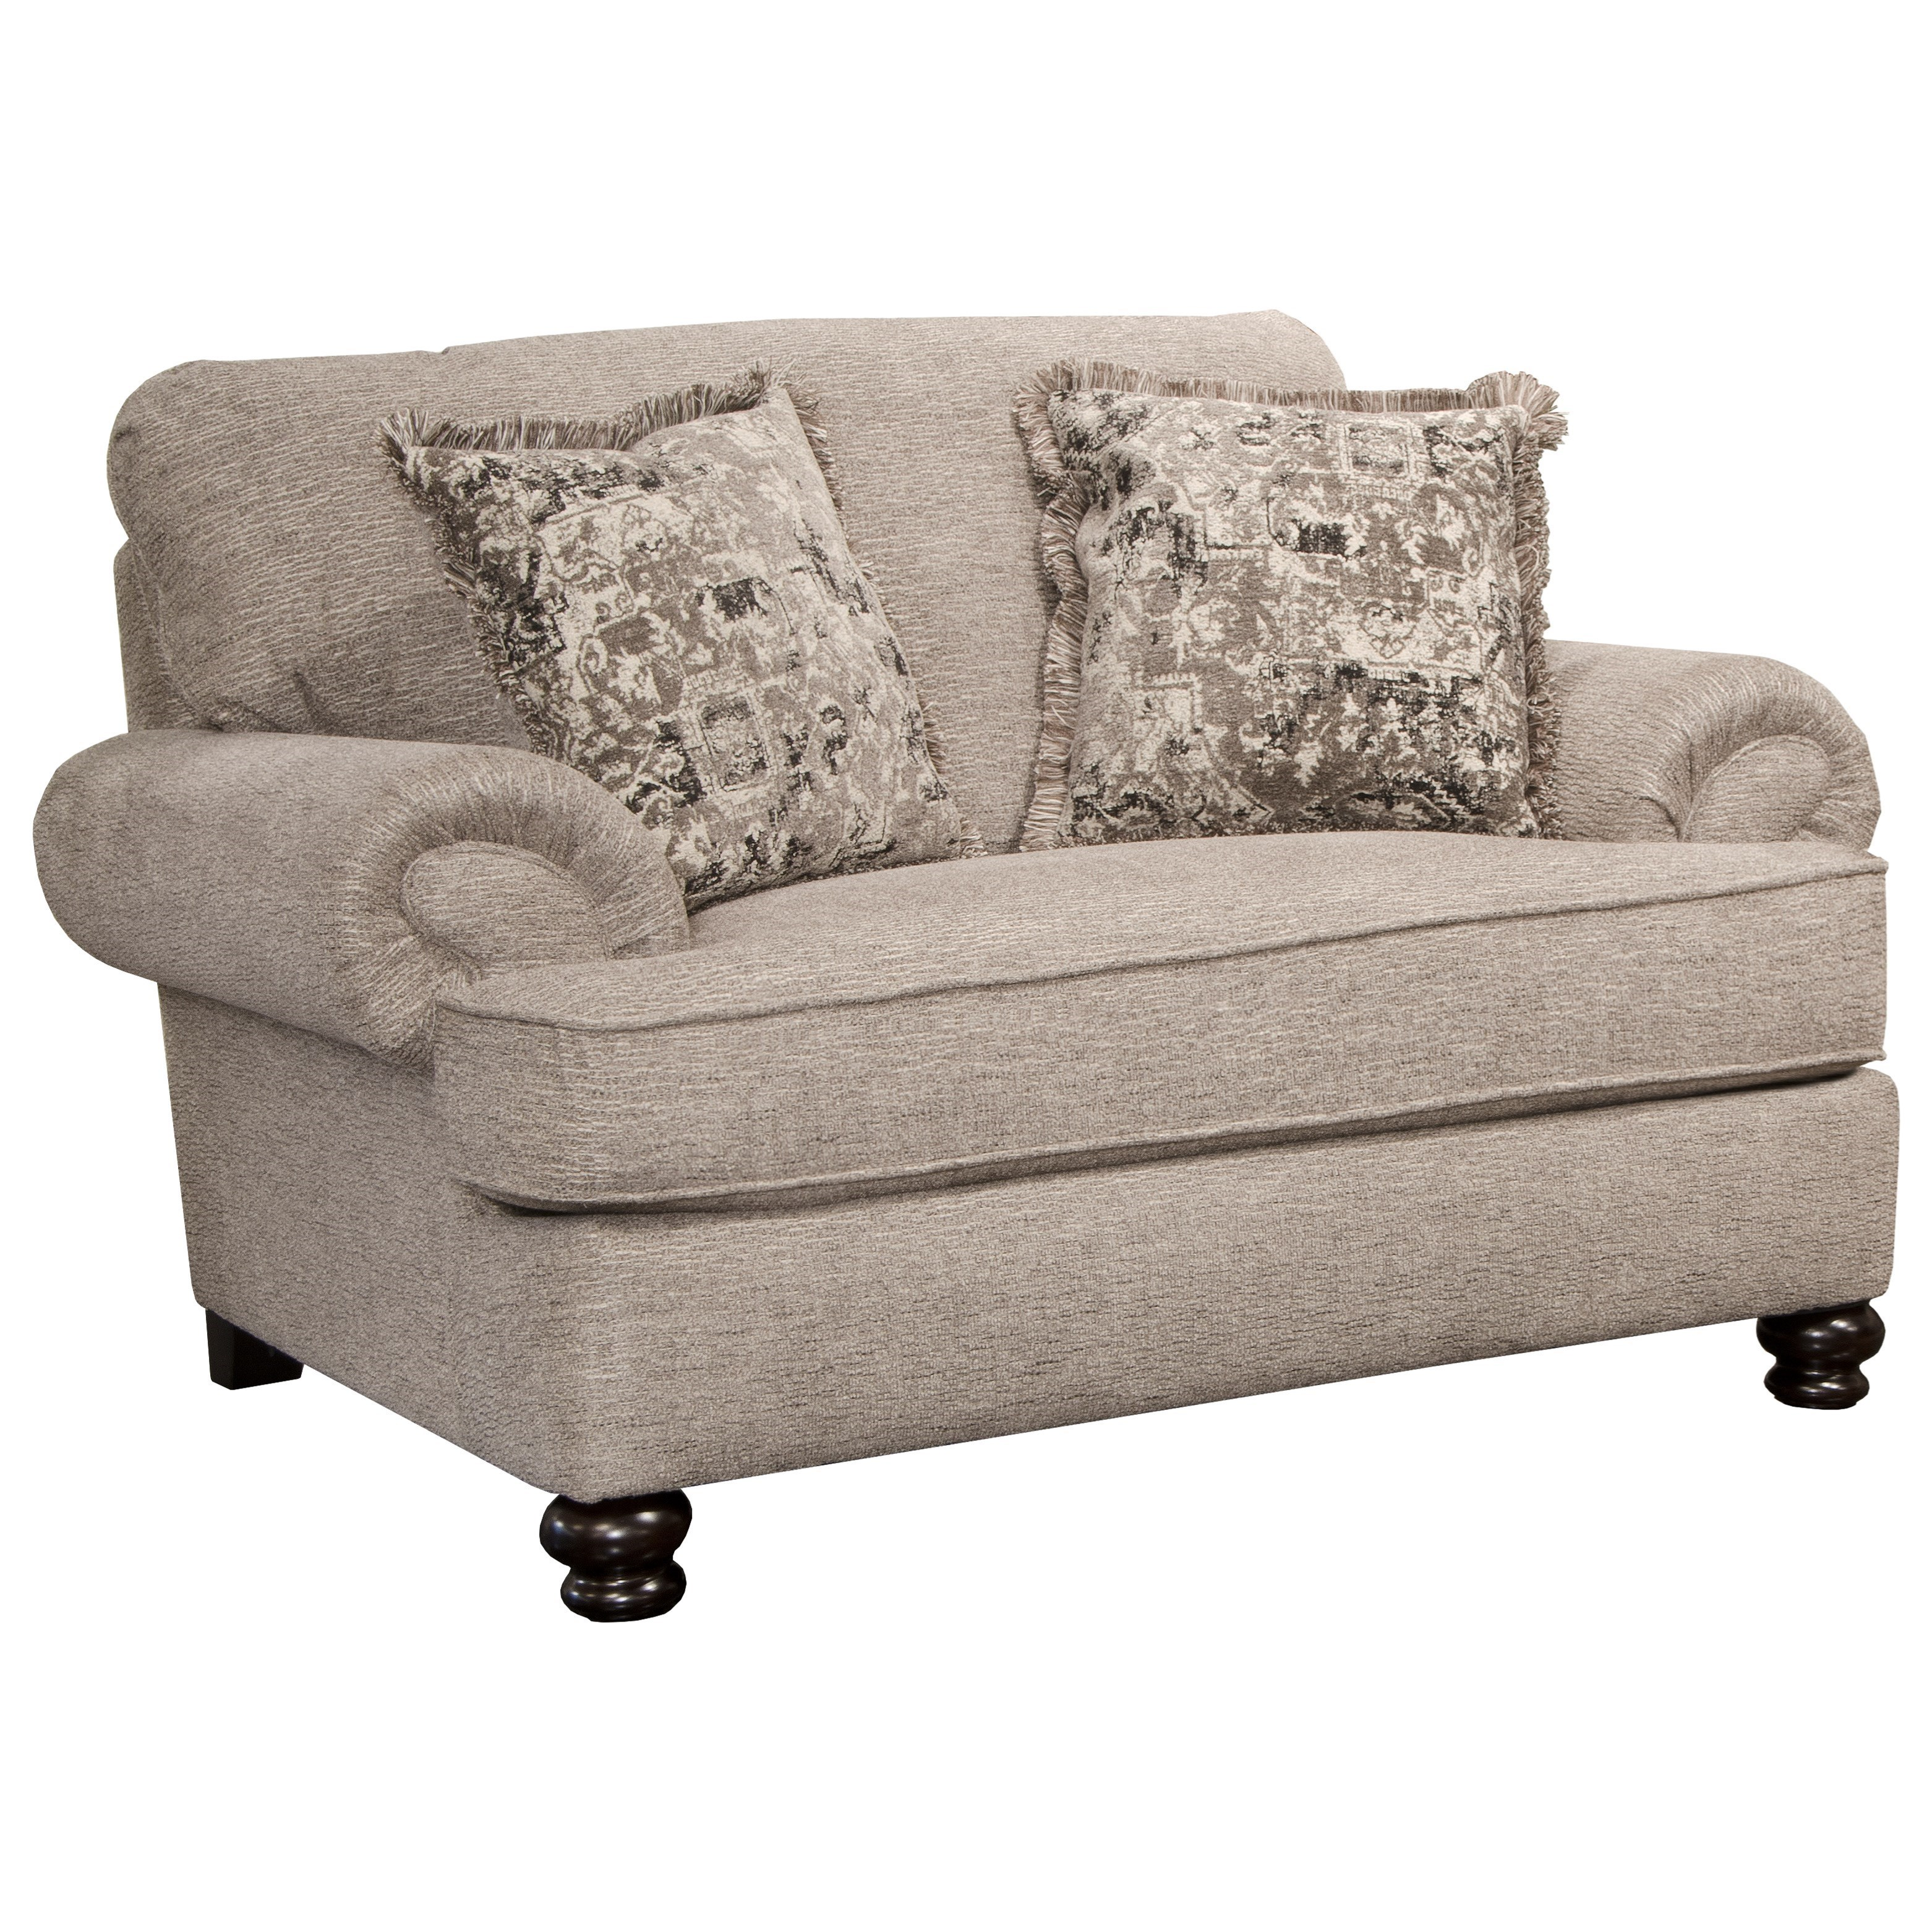 Freemont Chair and a Half by Jackson Furniture at Value City Furniture